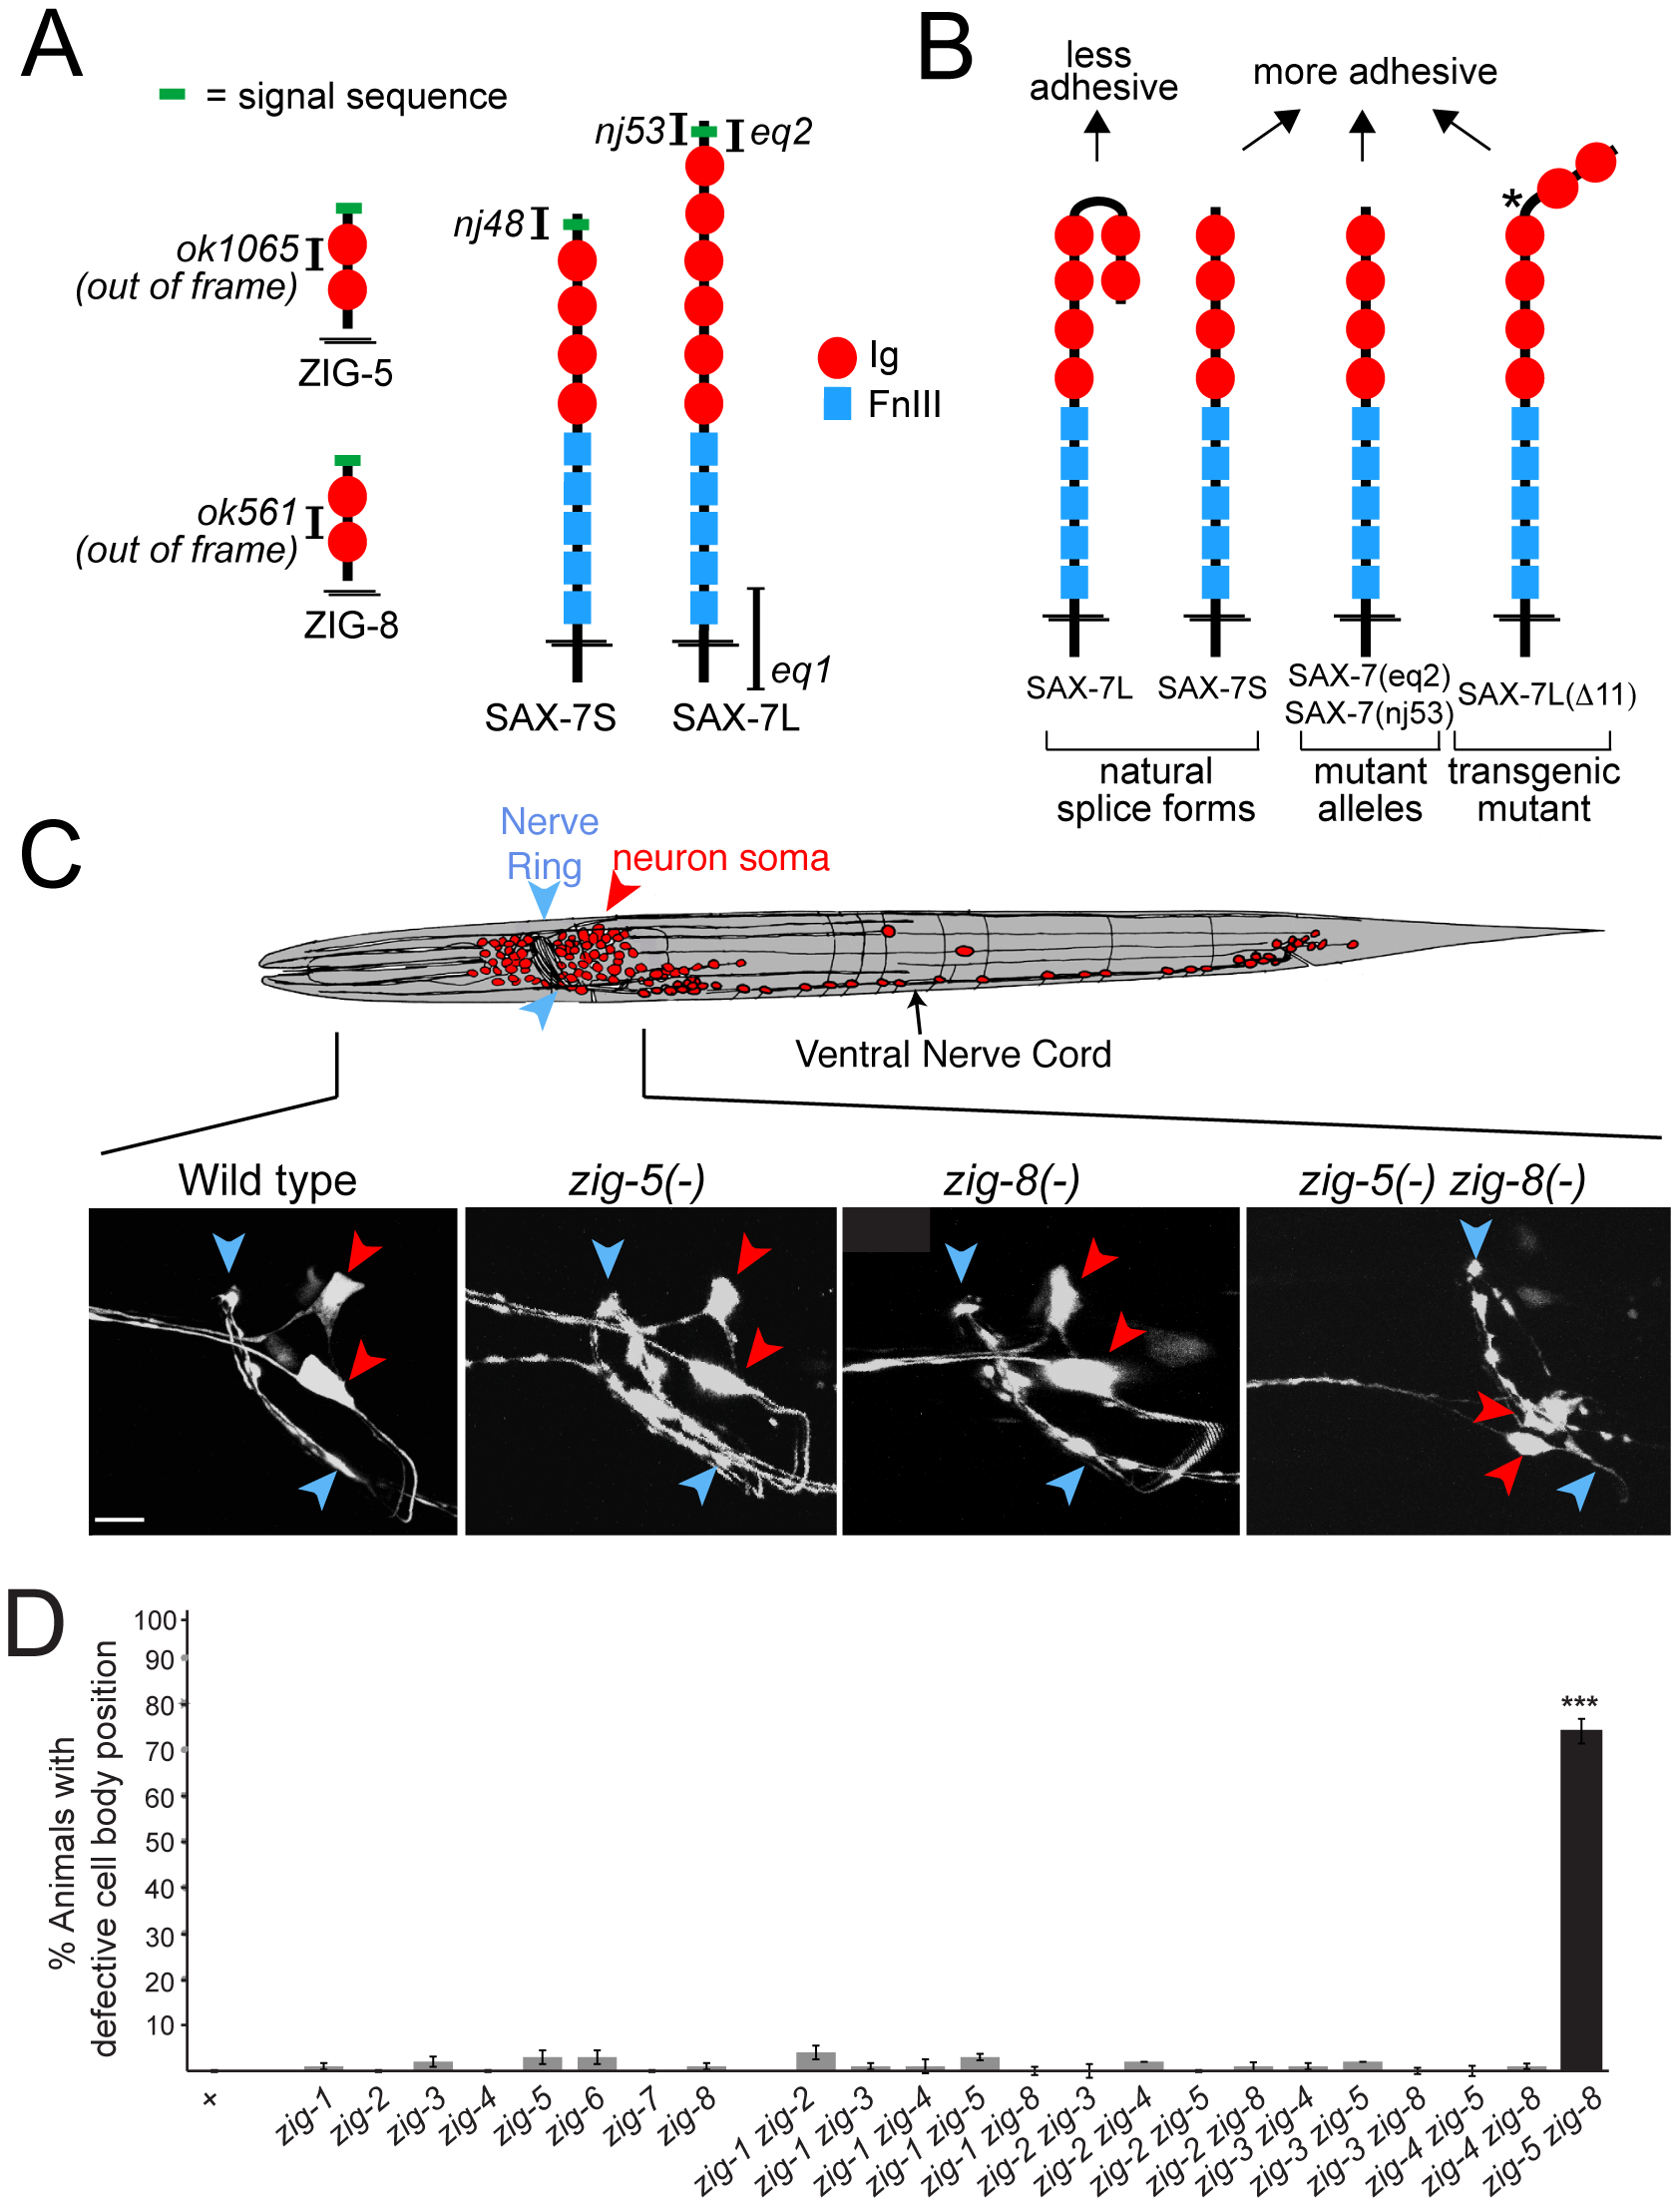 Neuronal maintenance factors and the defects caused by their removal.